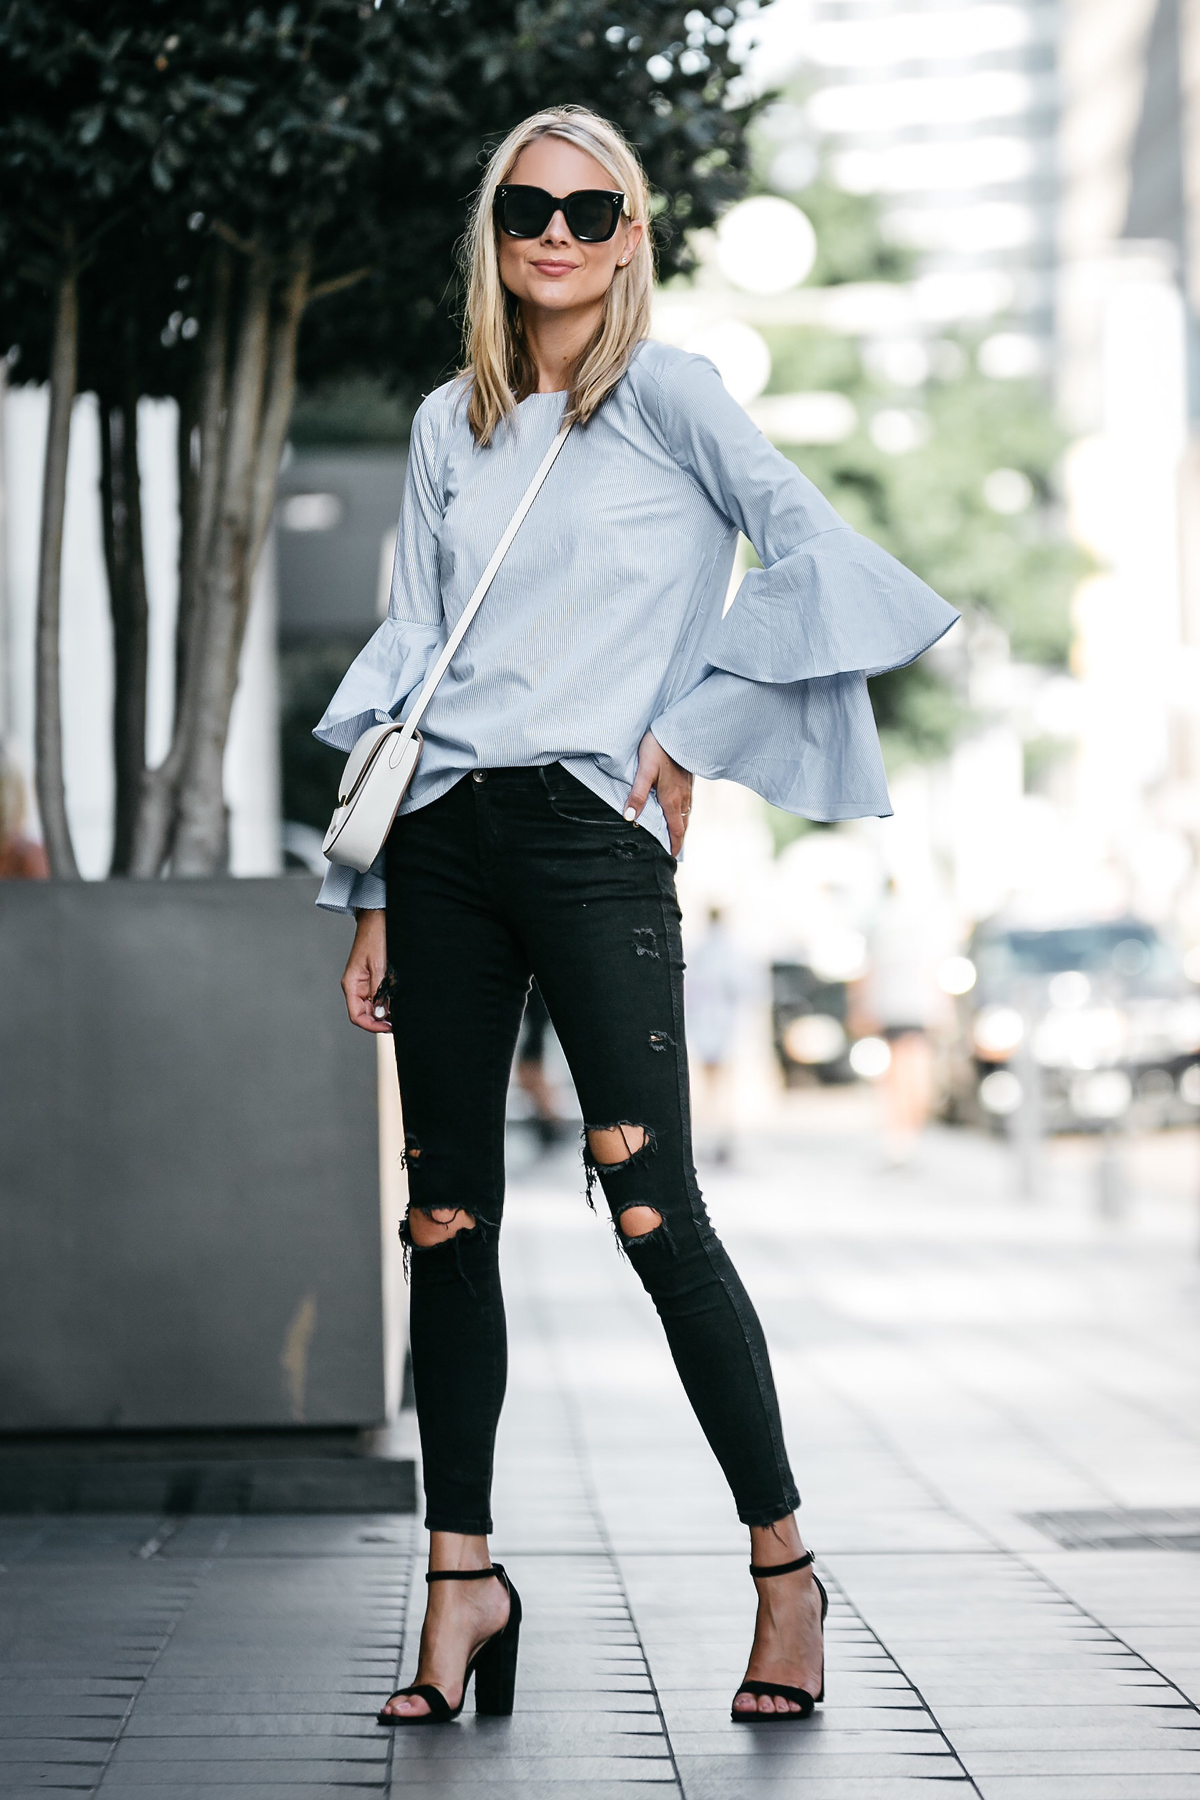 Blonde Woman Wearing Nordstrom Blue Bell Sleeve Top Black Ripped Skinny Jeans Outfit Celine Trotteur White Crossbody Black Heeled Sandals Fashion Jackson Dallas Blogger Fashion Blogger Street Style